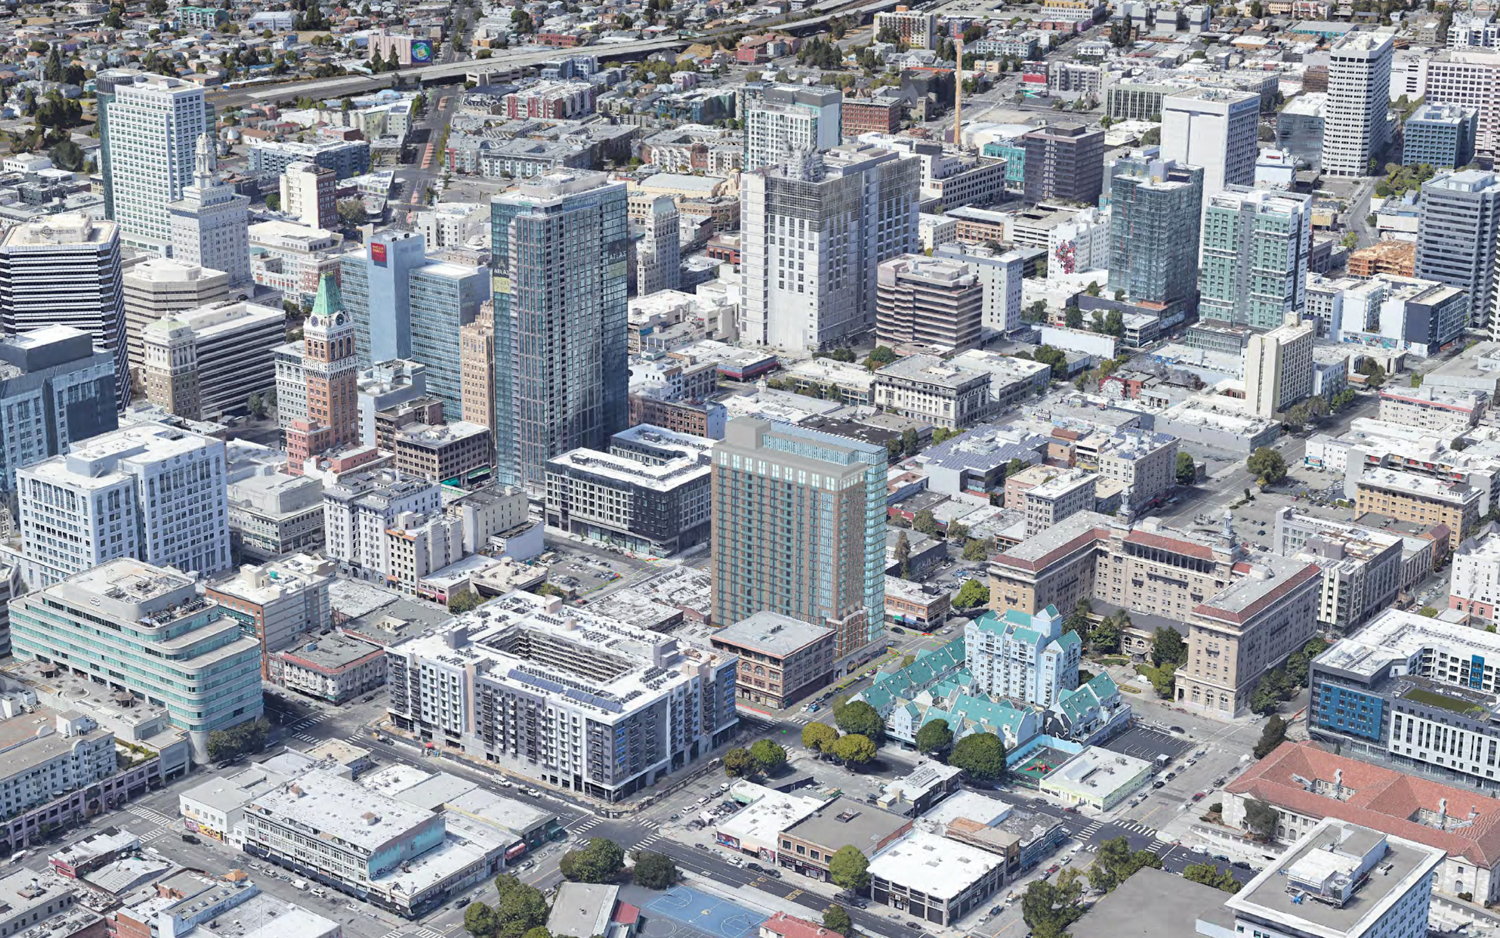 1261 Harrison Street aerial view from the south, rendering by Heller Manus Architects using Google Satellite imagery